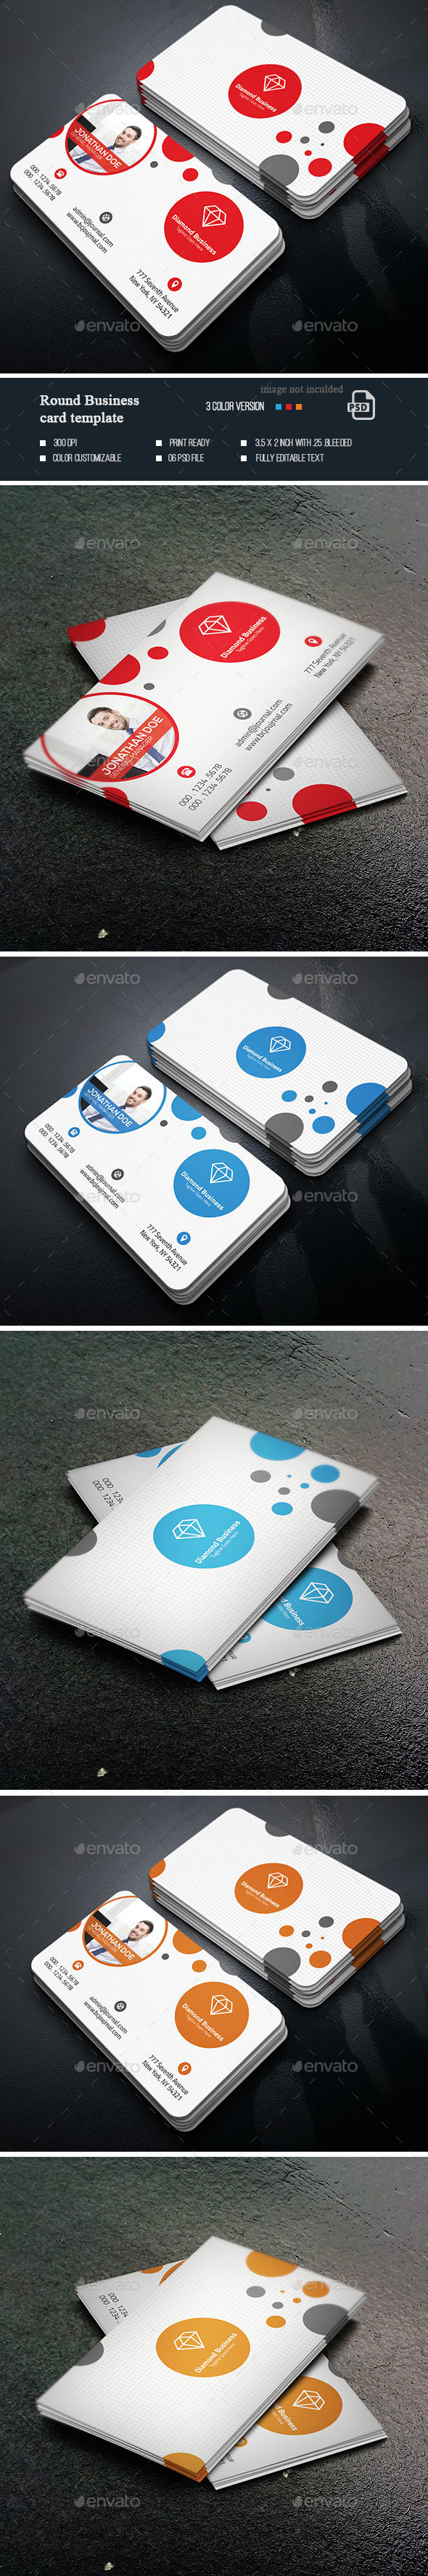 Round Business Card Templates - Business Cards Print Templates